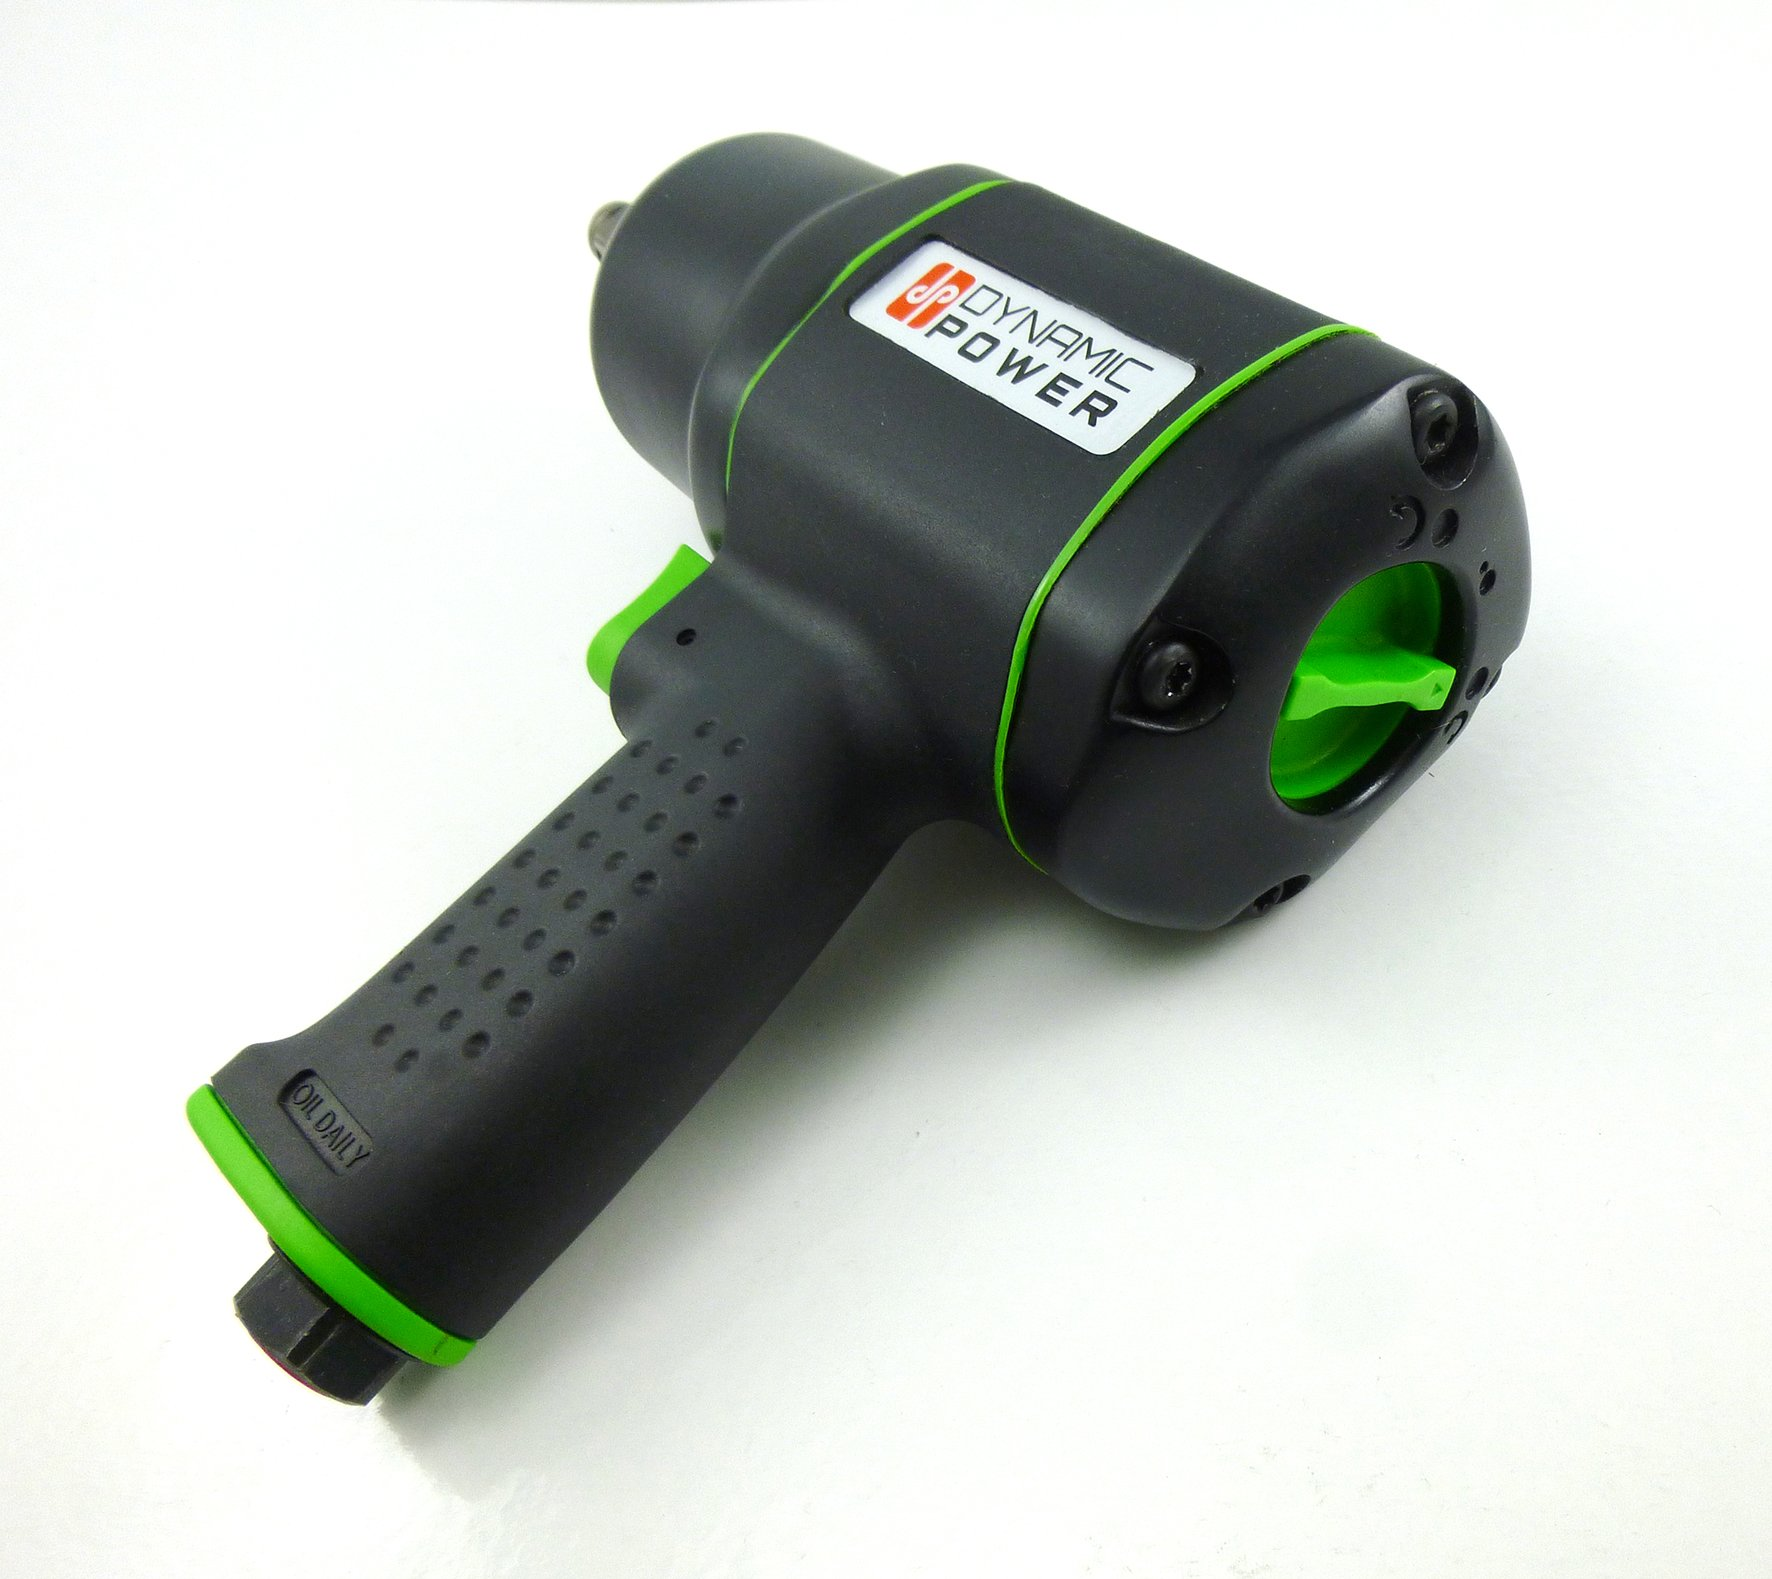 Dynamic Power 1/2 in. Air Impact Wrench Lightweight Composite Pneumatic 600ft/lb Torque by Dynamic Power (Image #2)